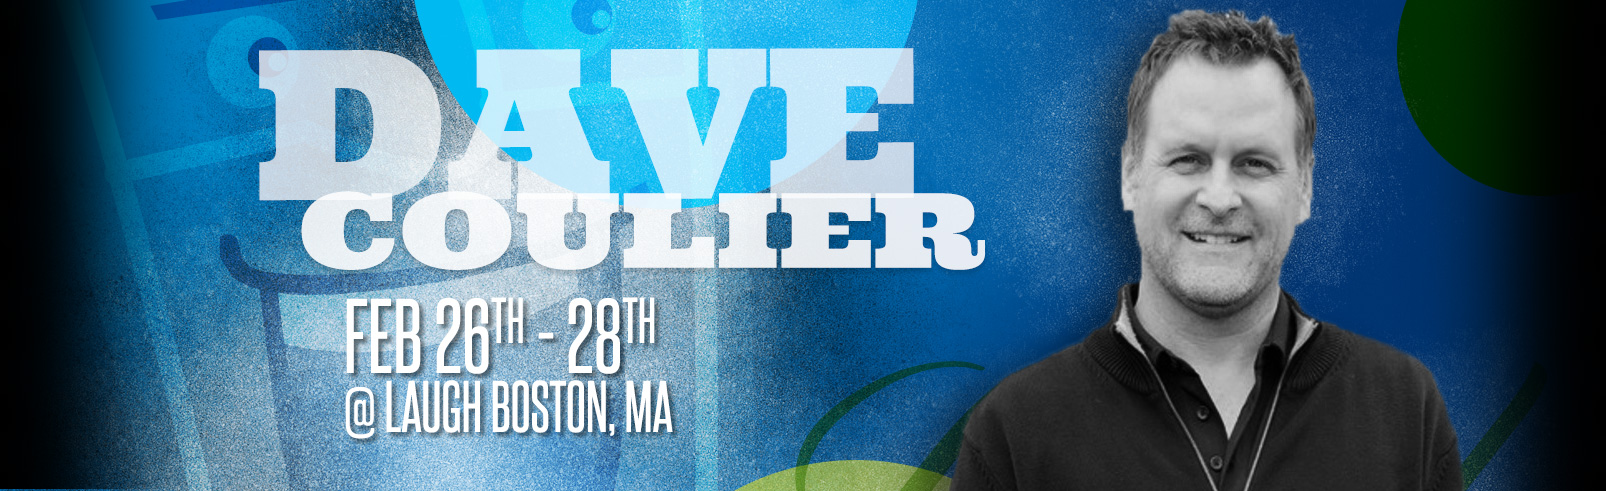 Dave Coulier @ Laugh Boston